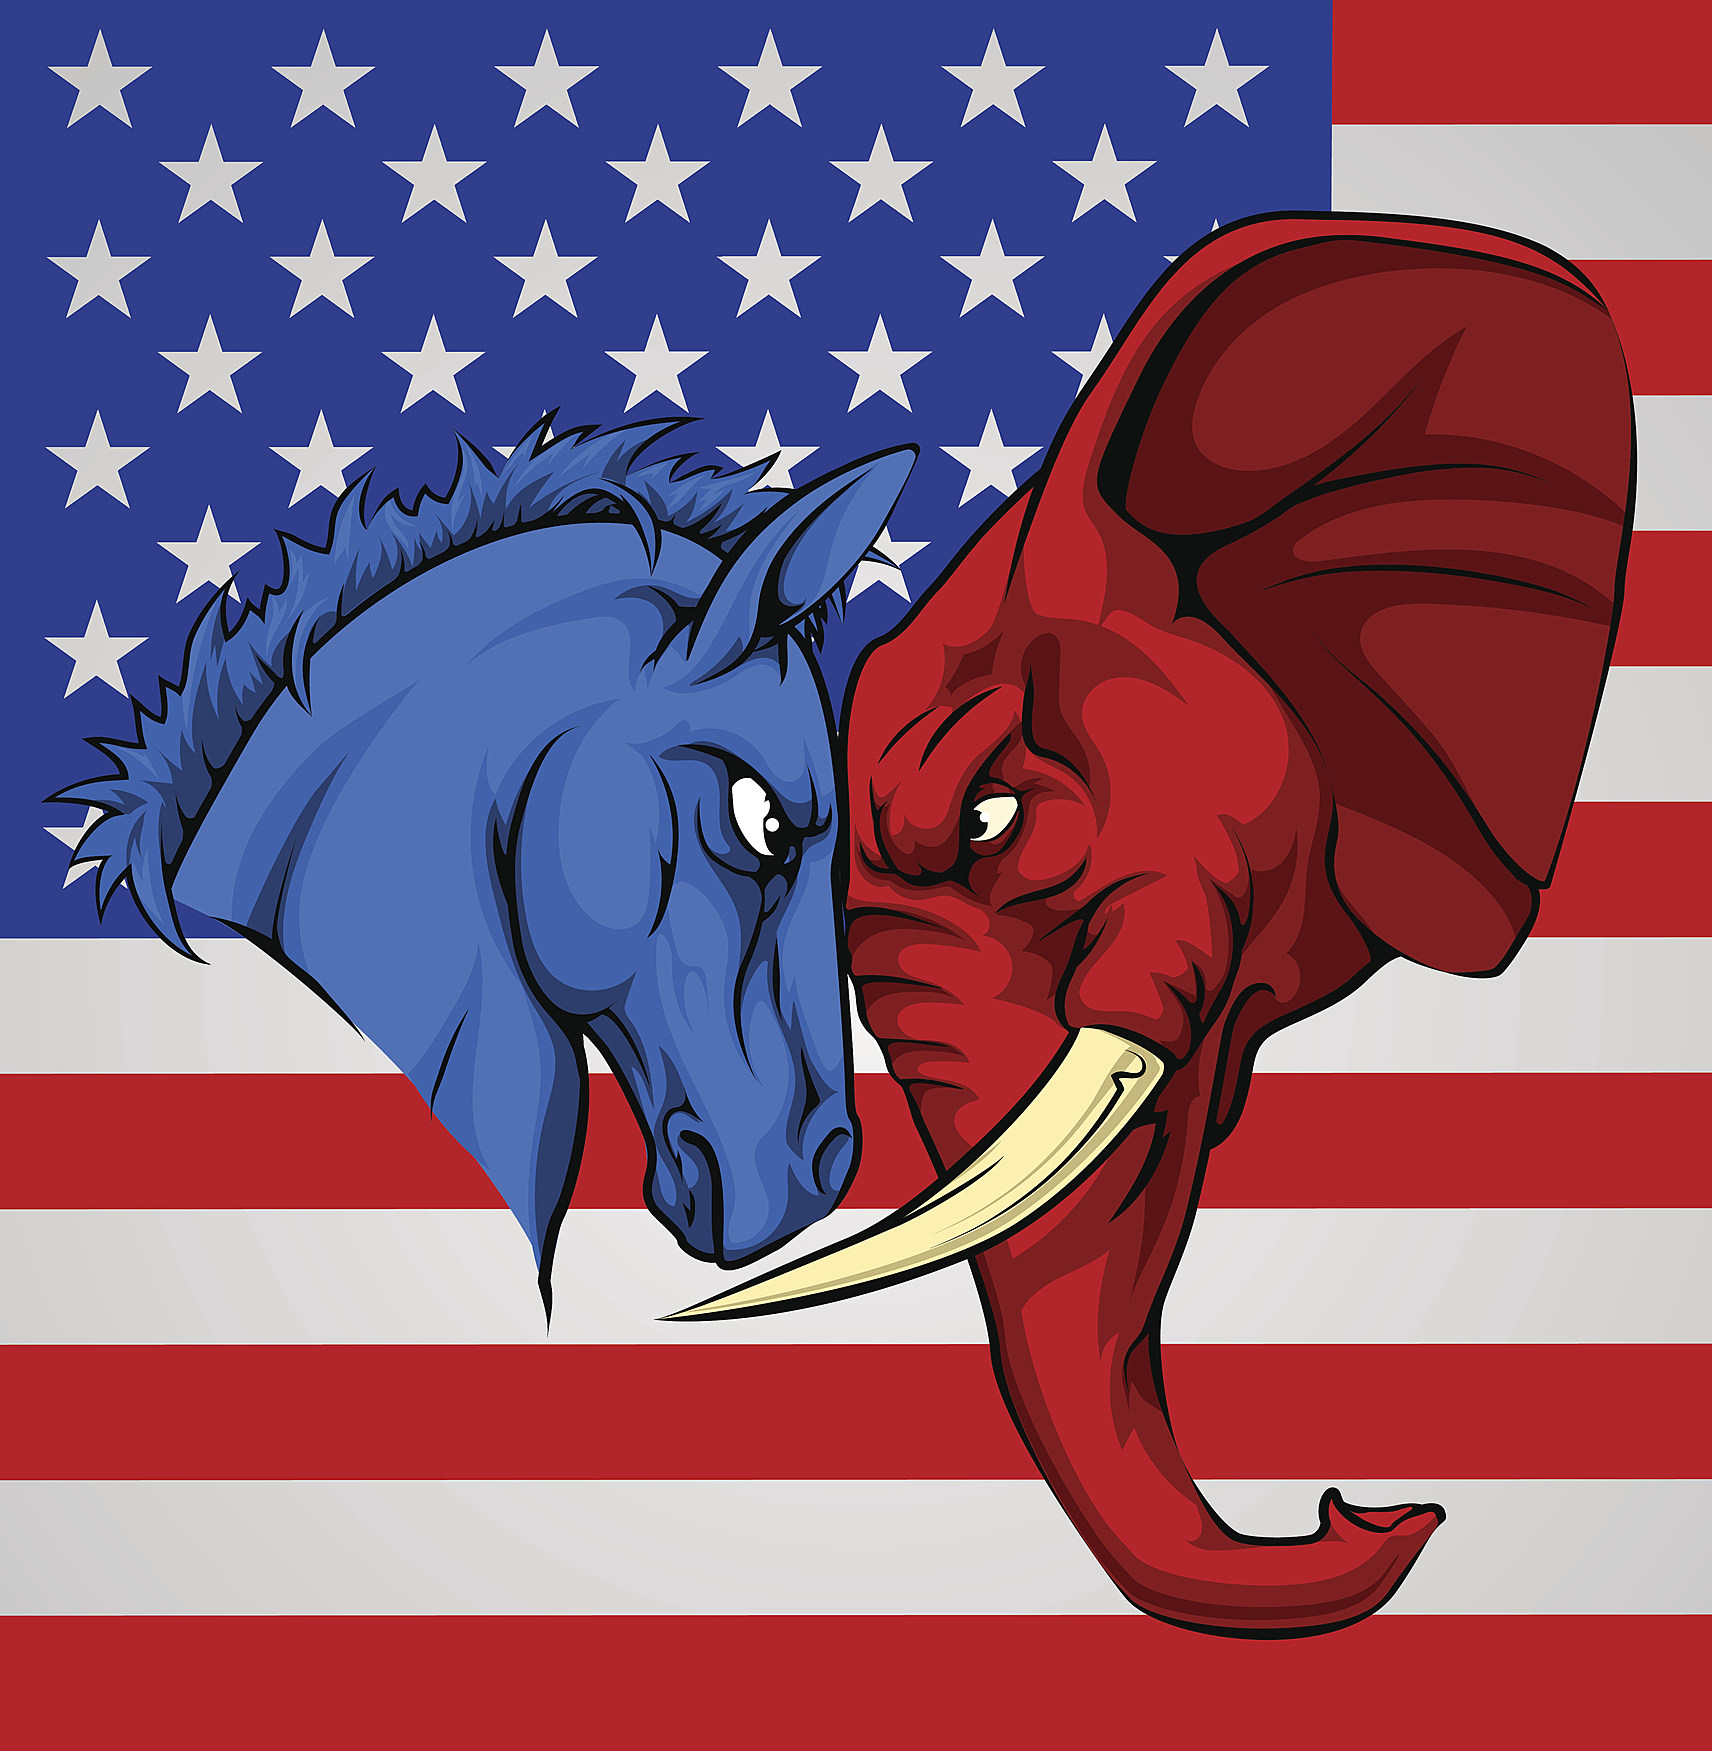 Elephant Donkey Democrat Republican Fight